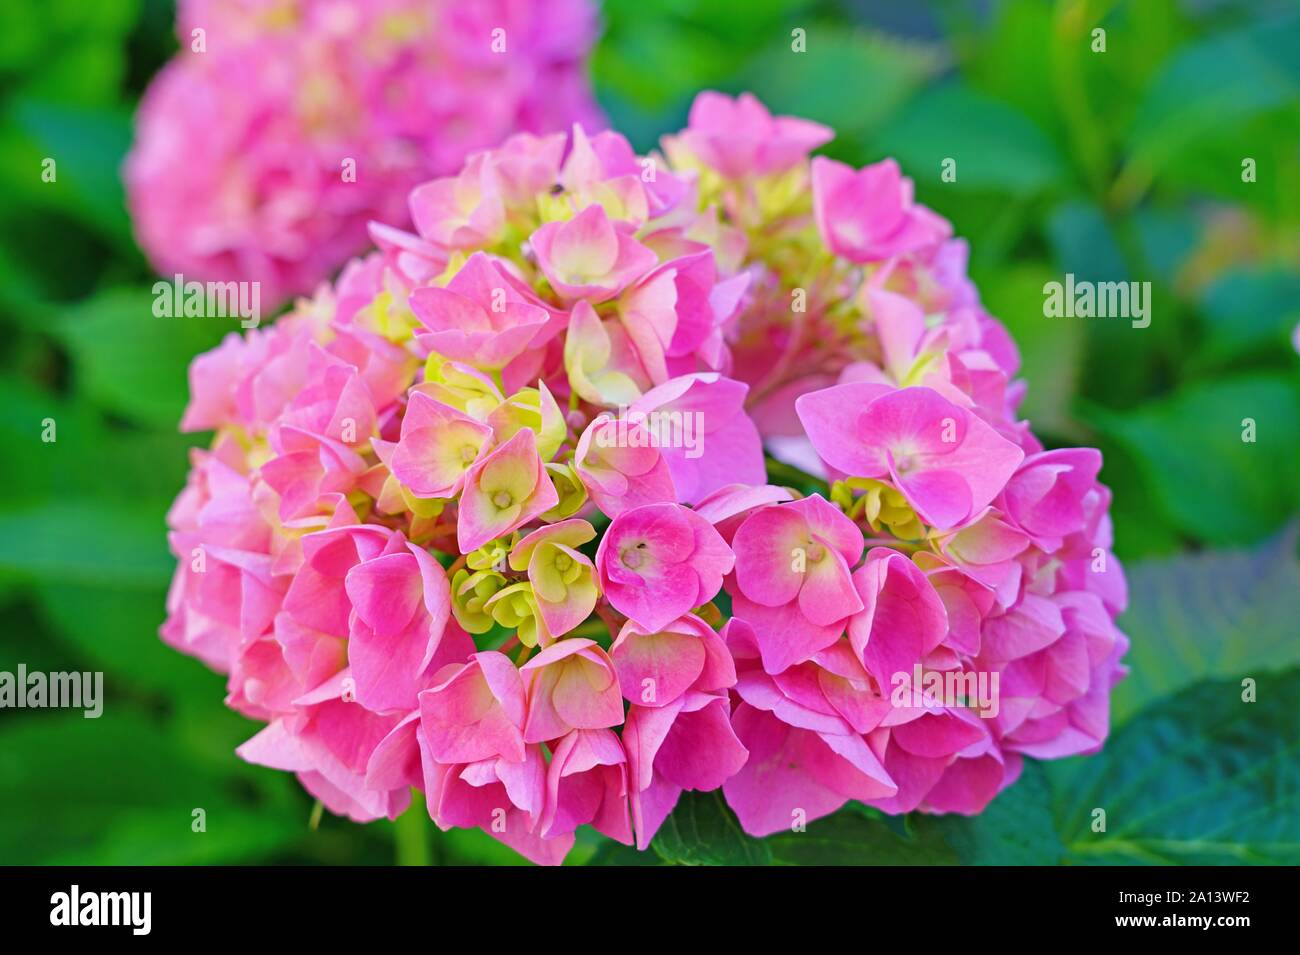 Pink Heads Of Hydrangea Flowers Stock Photo 327697526 Alamy